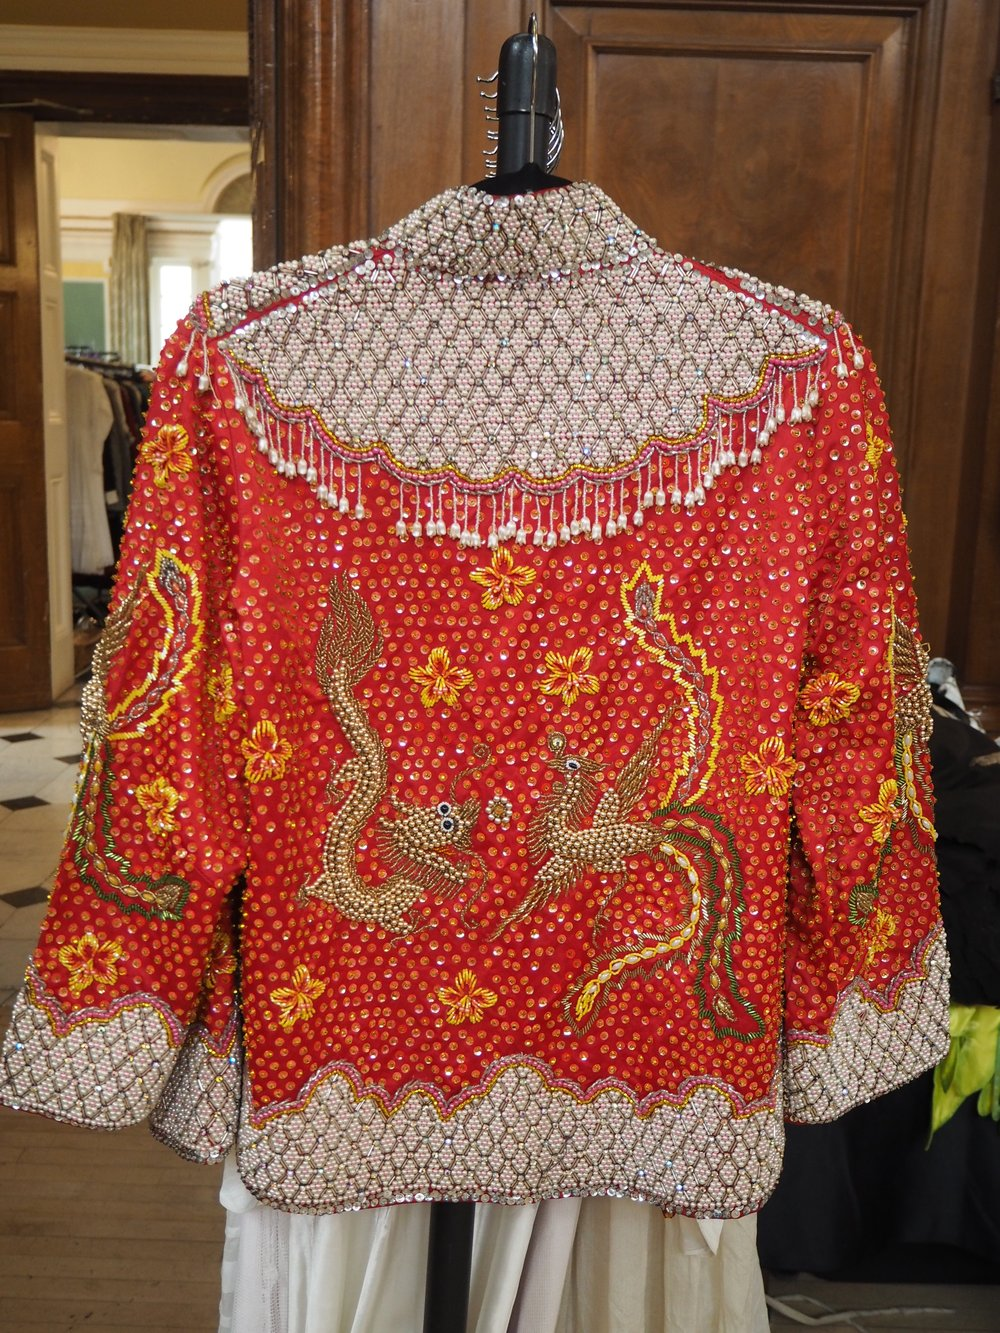 Sequin jacket from Paula Reboredo Vintage